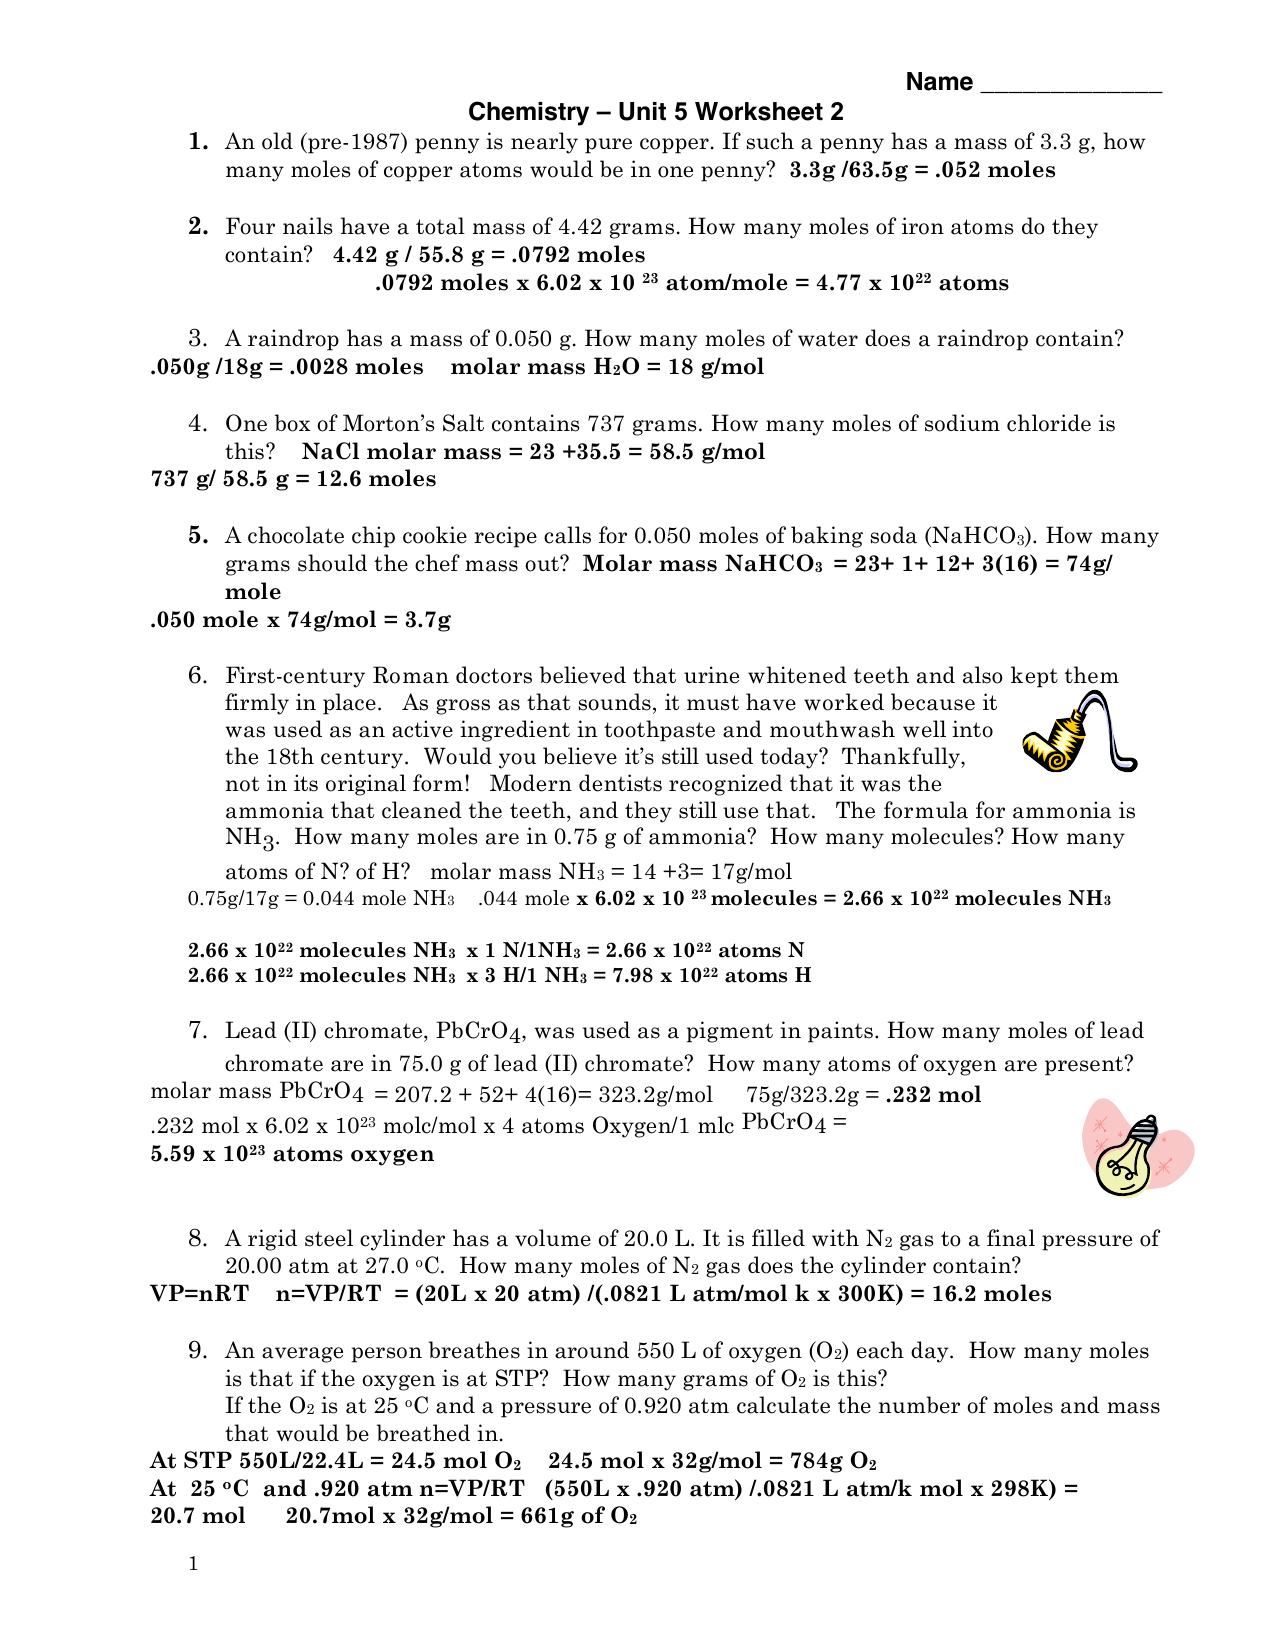 Worksheets Moles Molecules And Grams Worksheet unit 5 worksheet 2